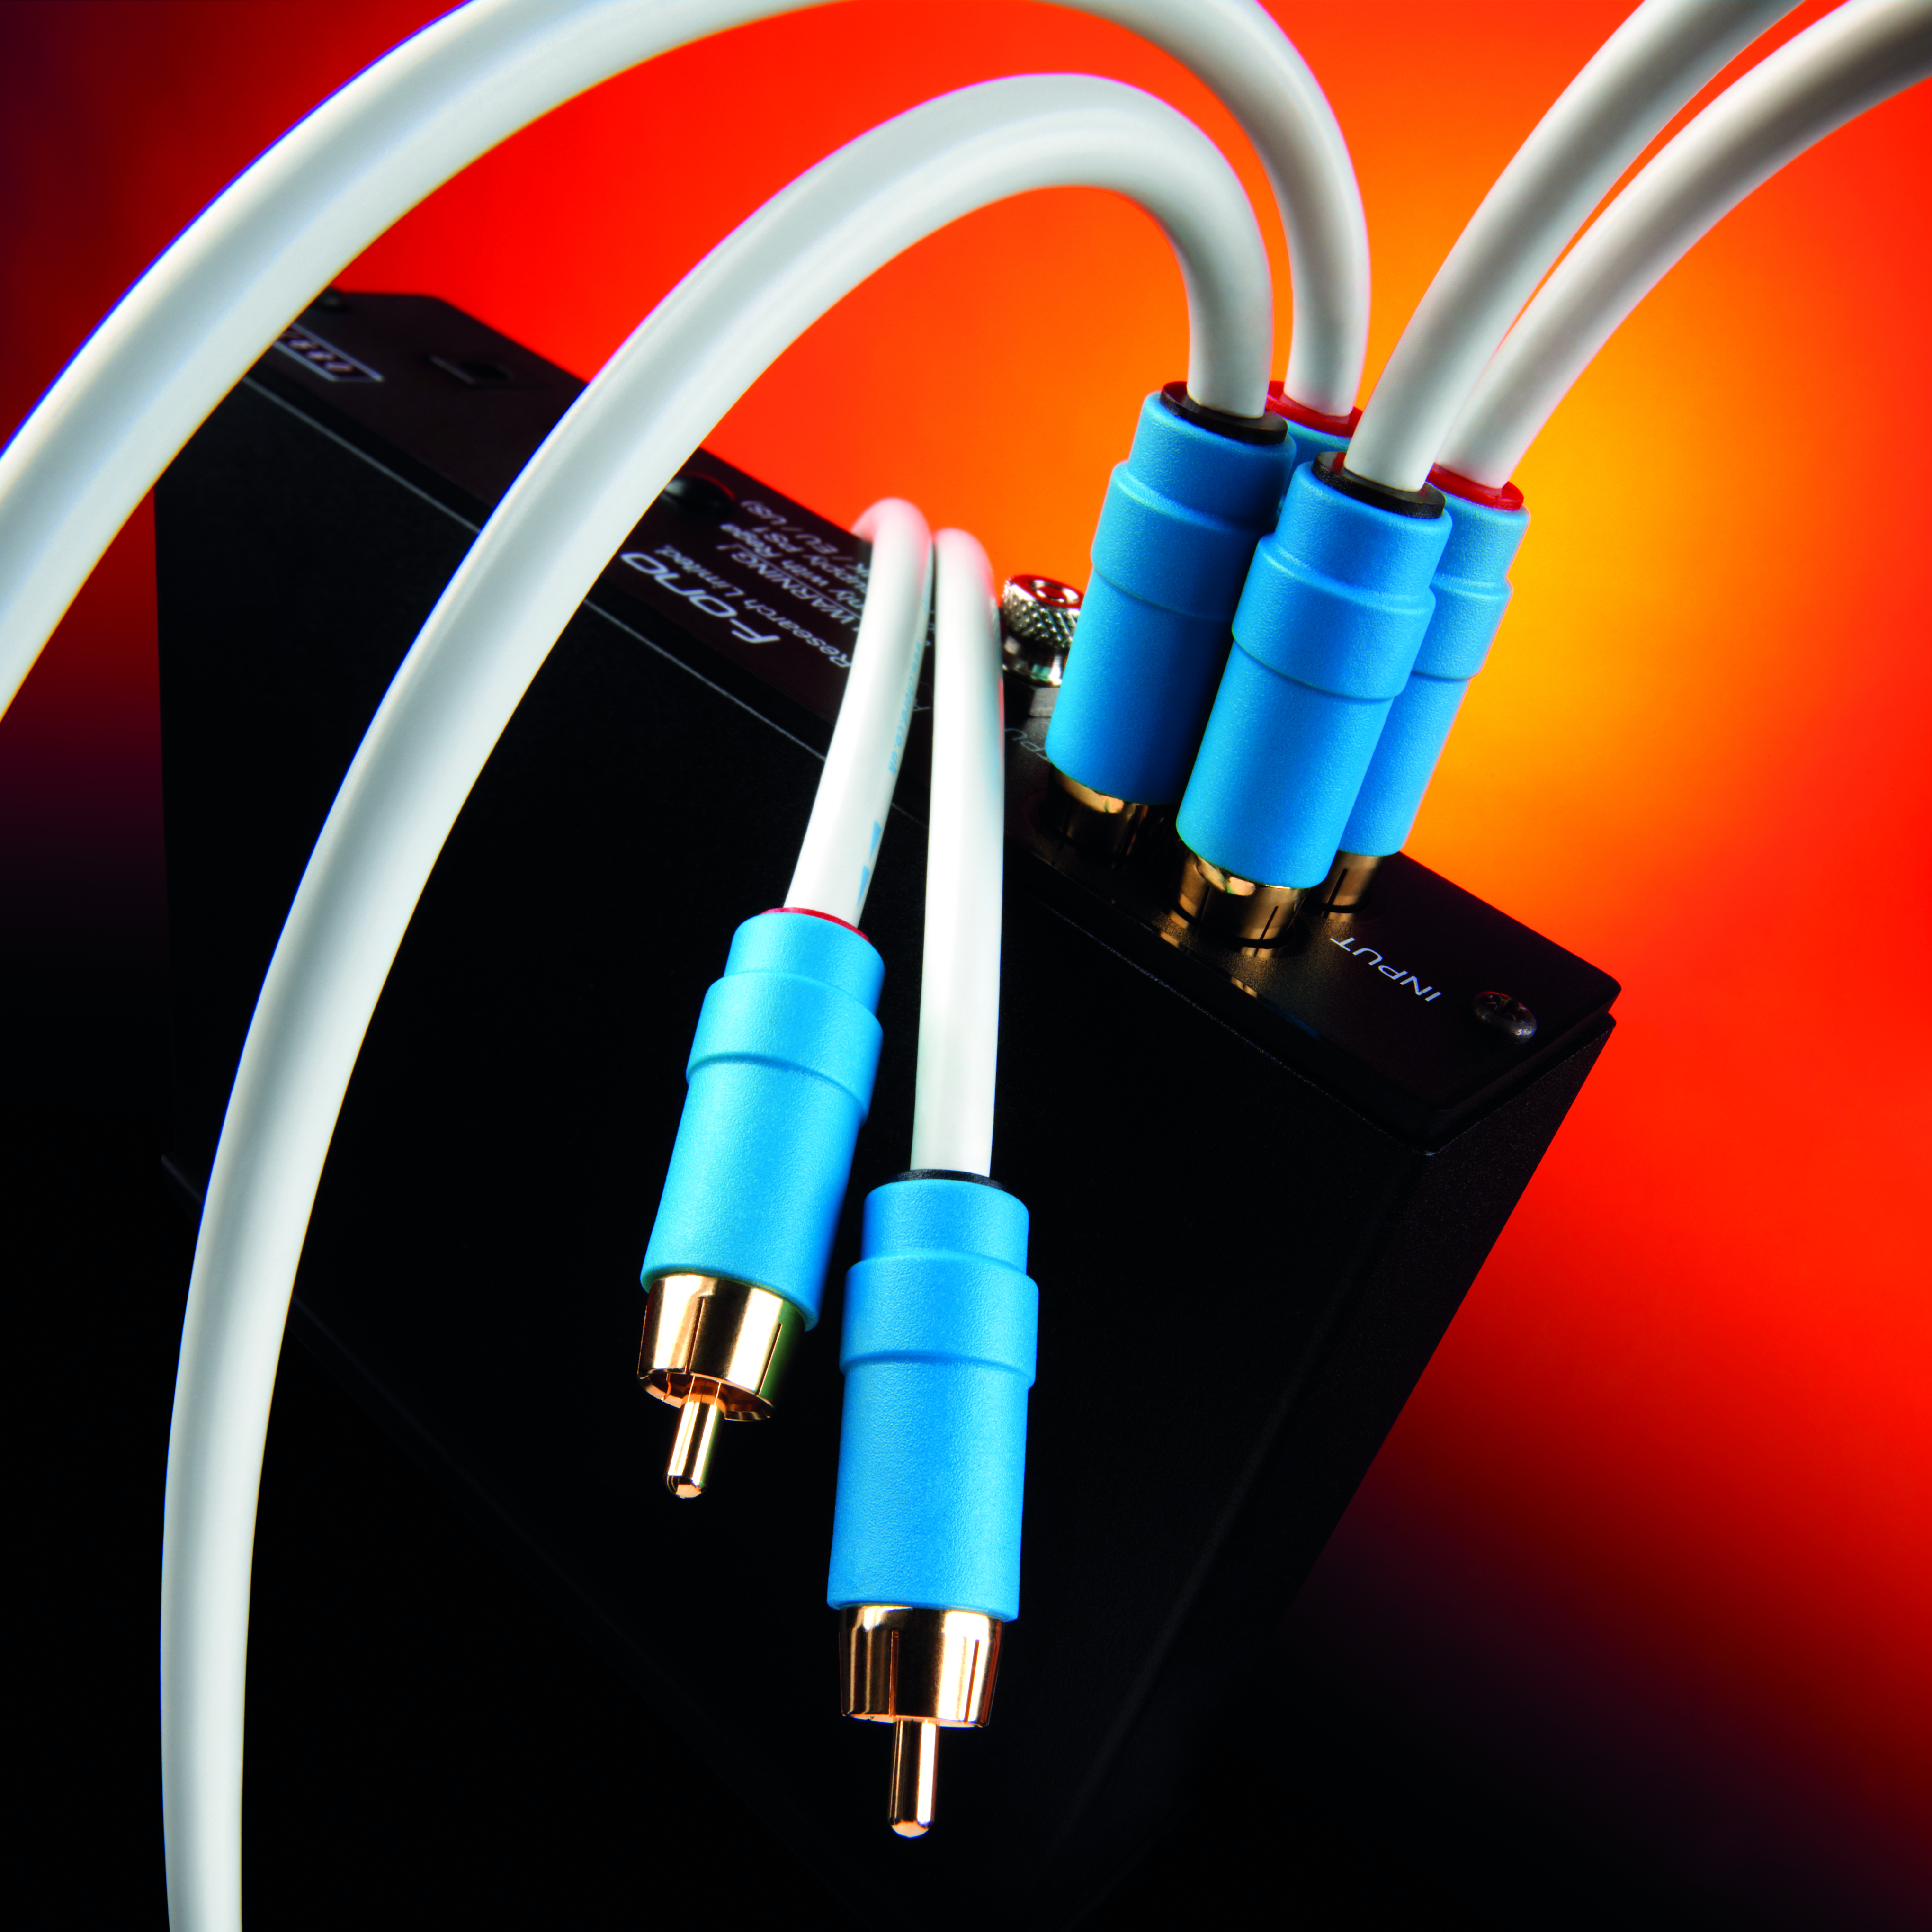 C Line Analogue Rca The Chord Company Dvd Home Theater Wiring Players Theatre Amplifiers Tuners Phono Stages And Pre To Power Amplifier Connections This Cable Can Also Be Used With Equipped